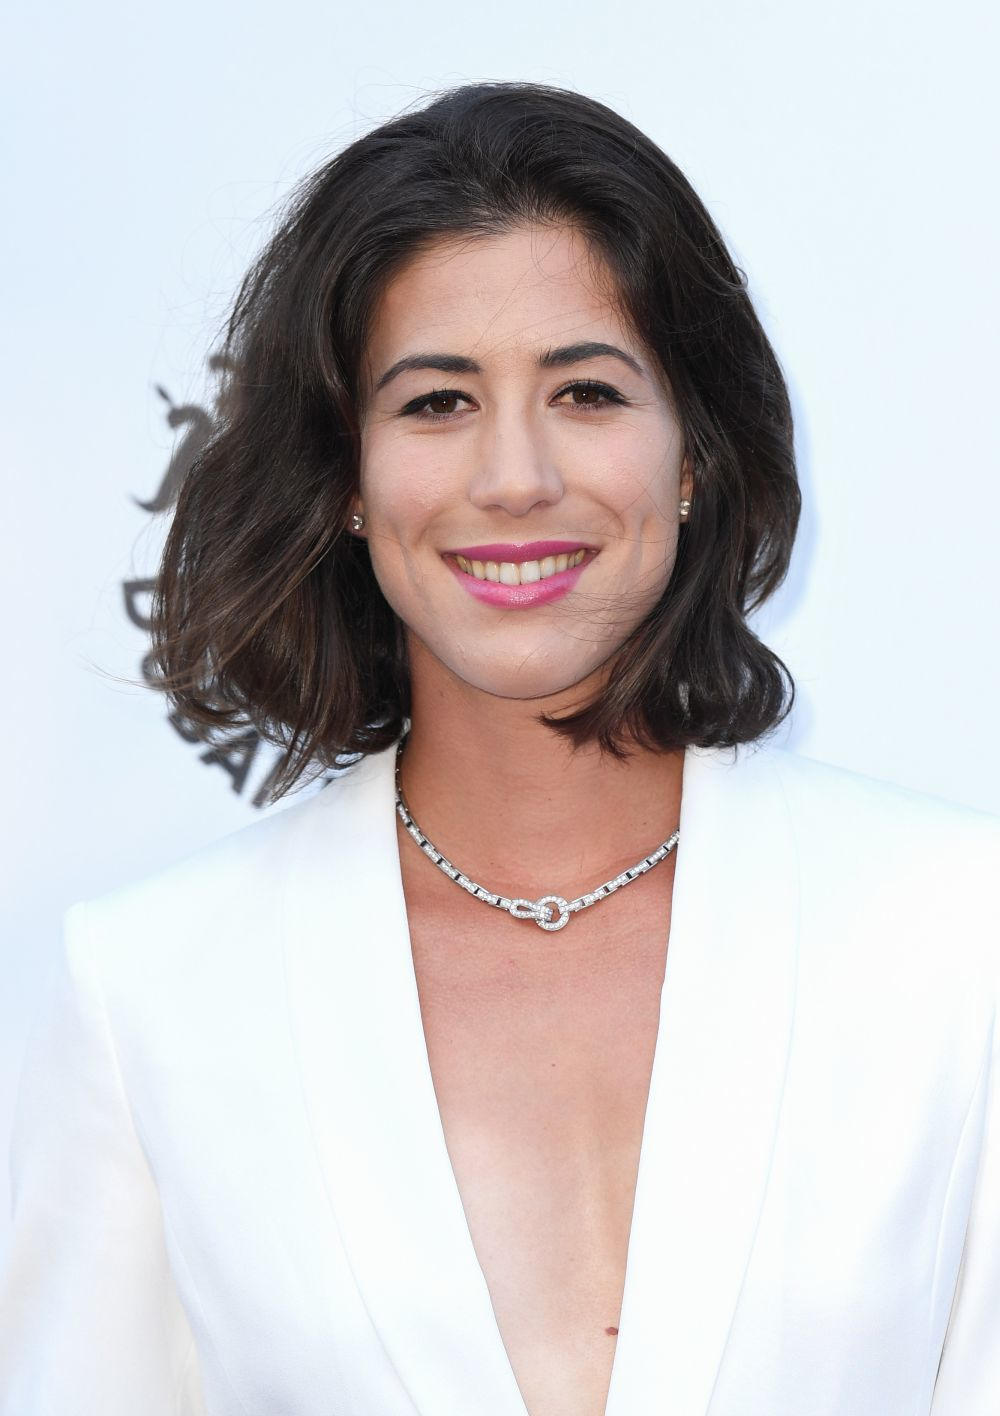 Garbiñe Muguruza con su color natural de pelo.